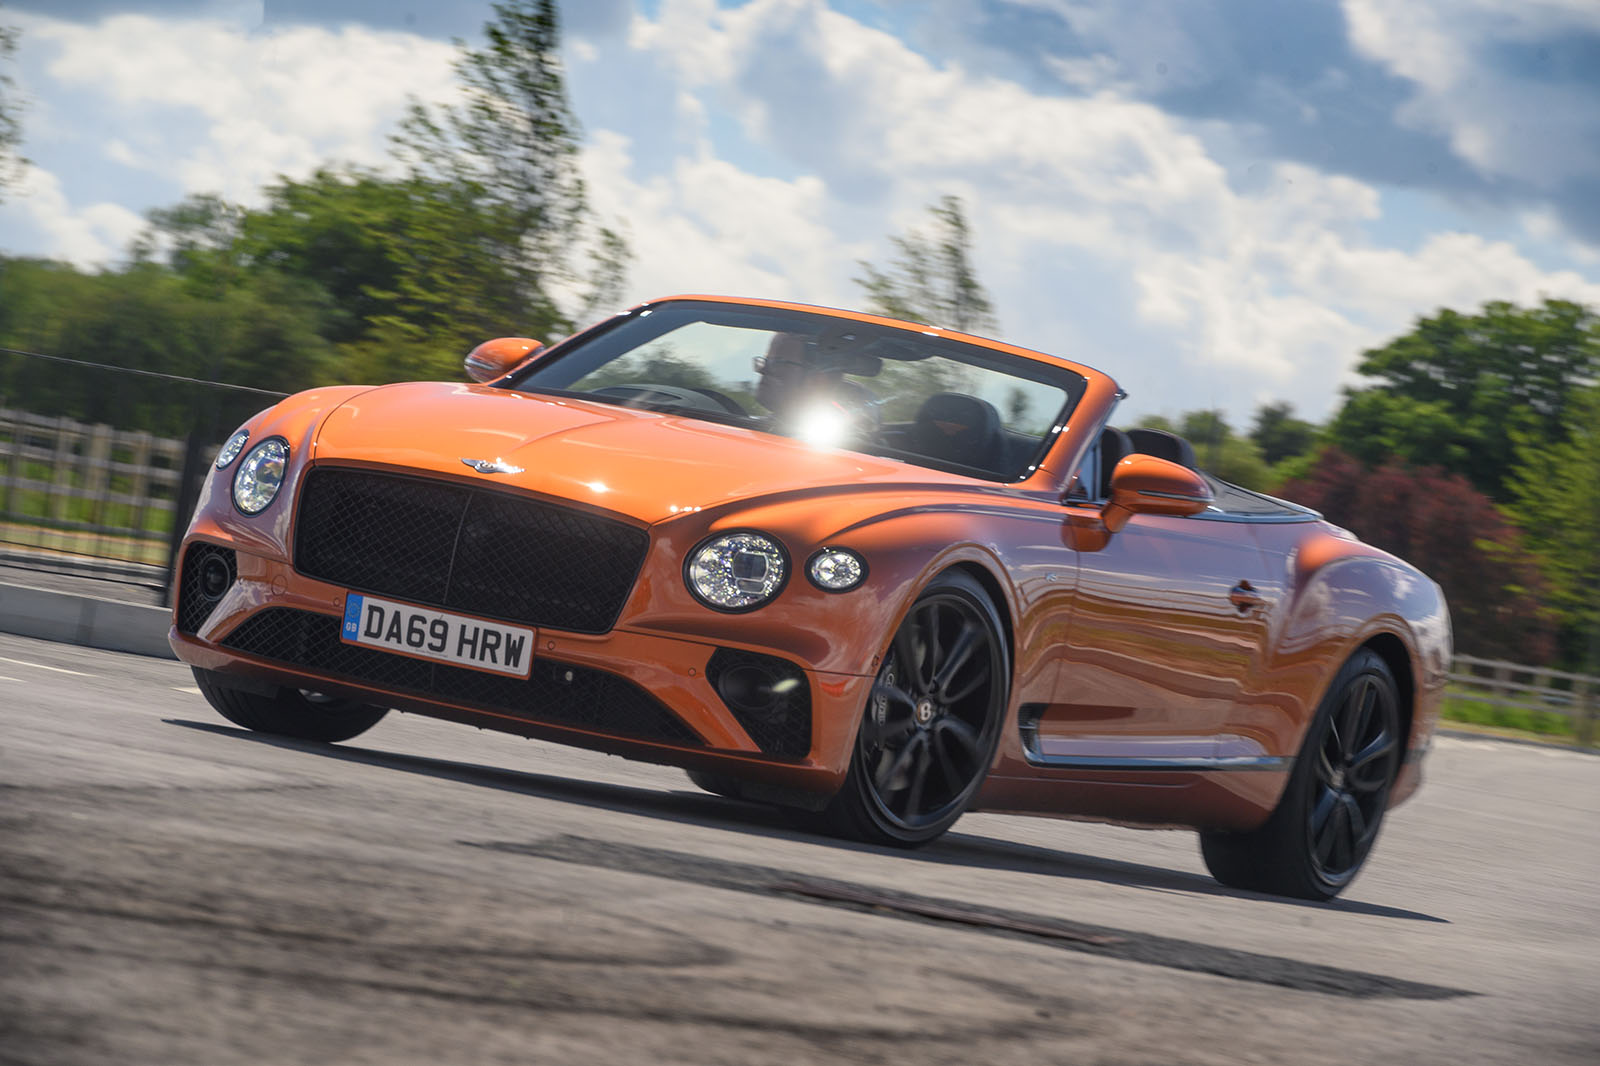 Bentley Continental Gt Convertible V8 2020 Uk Review Autocar